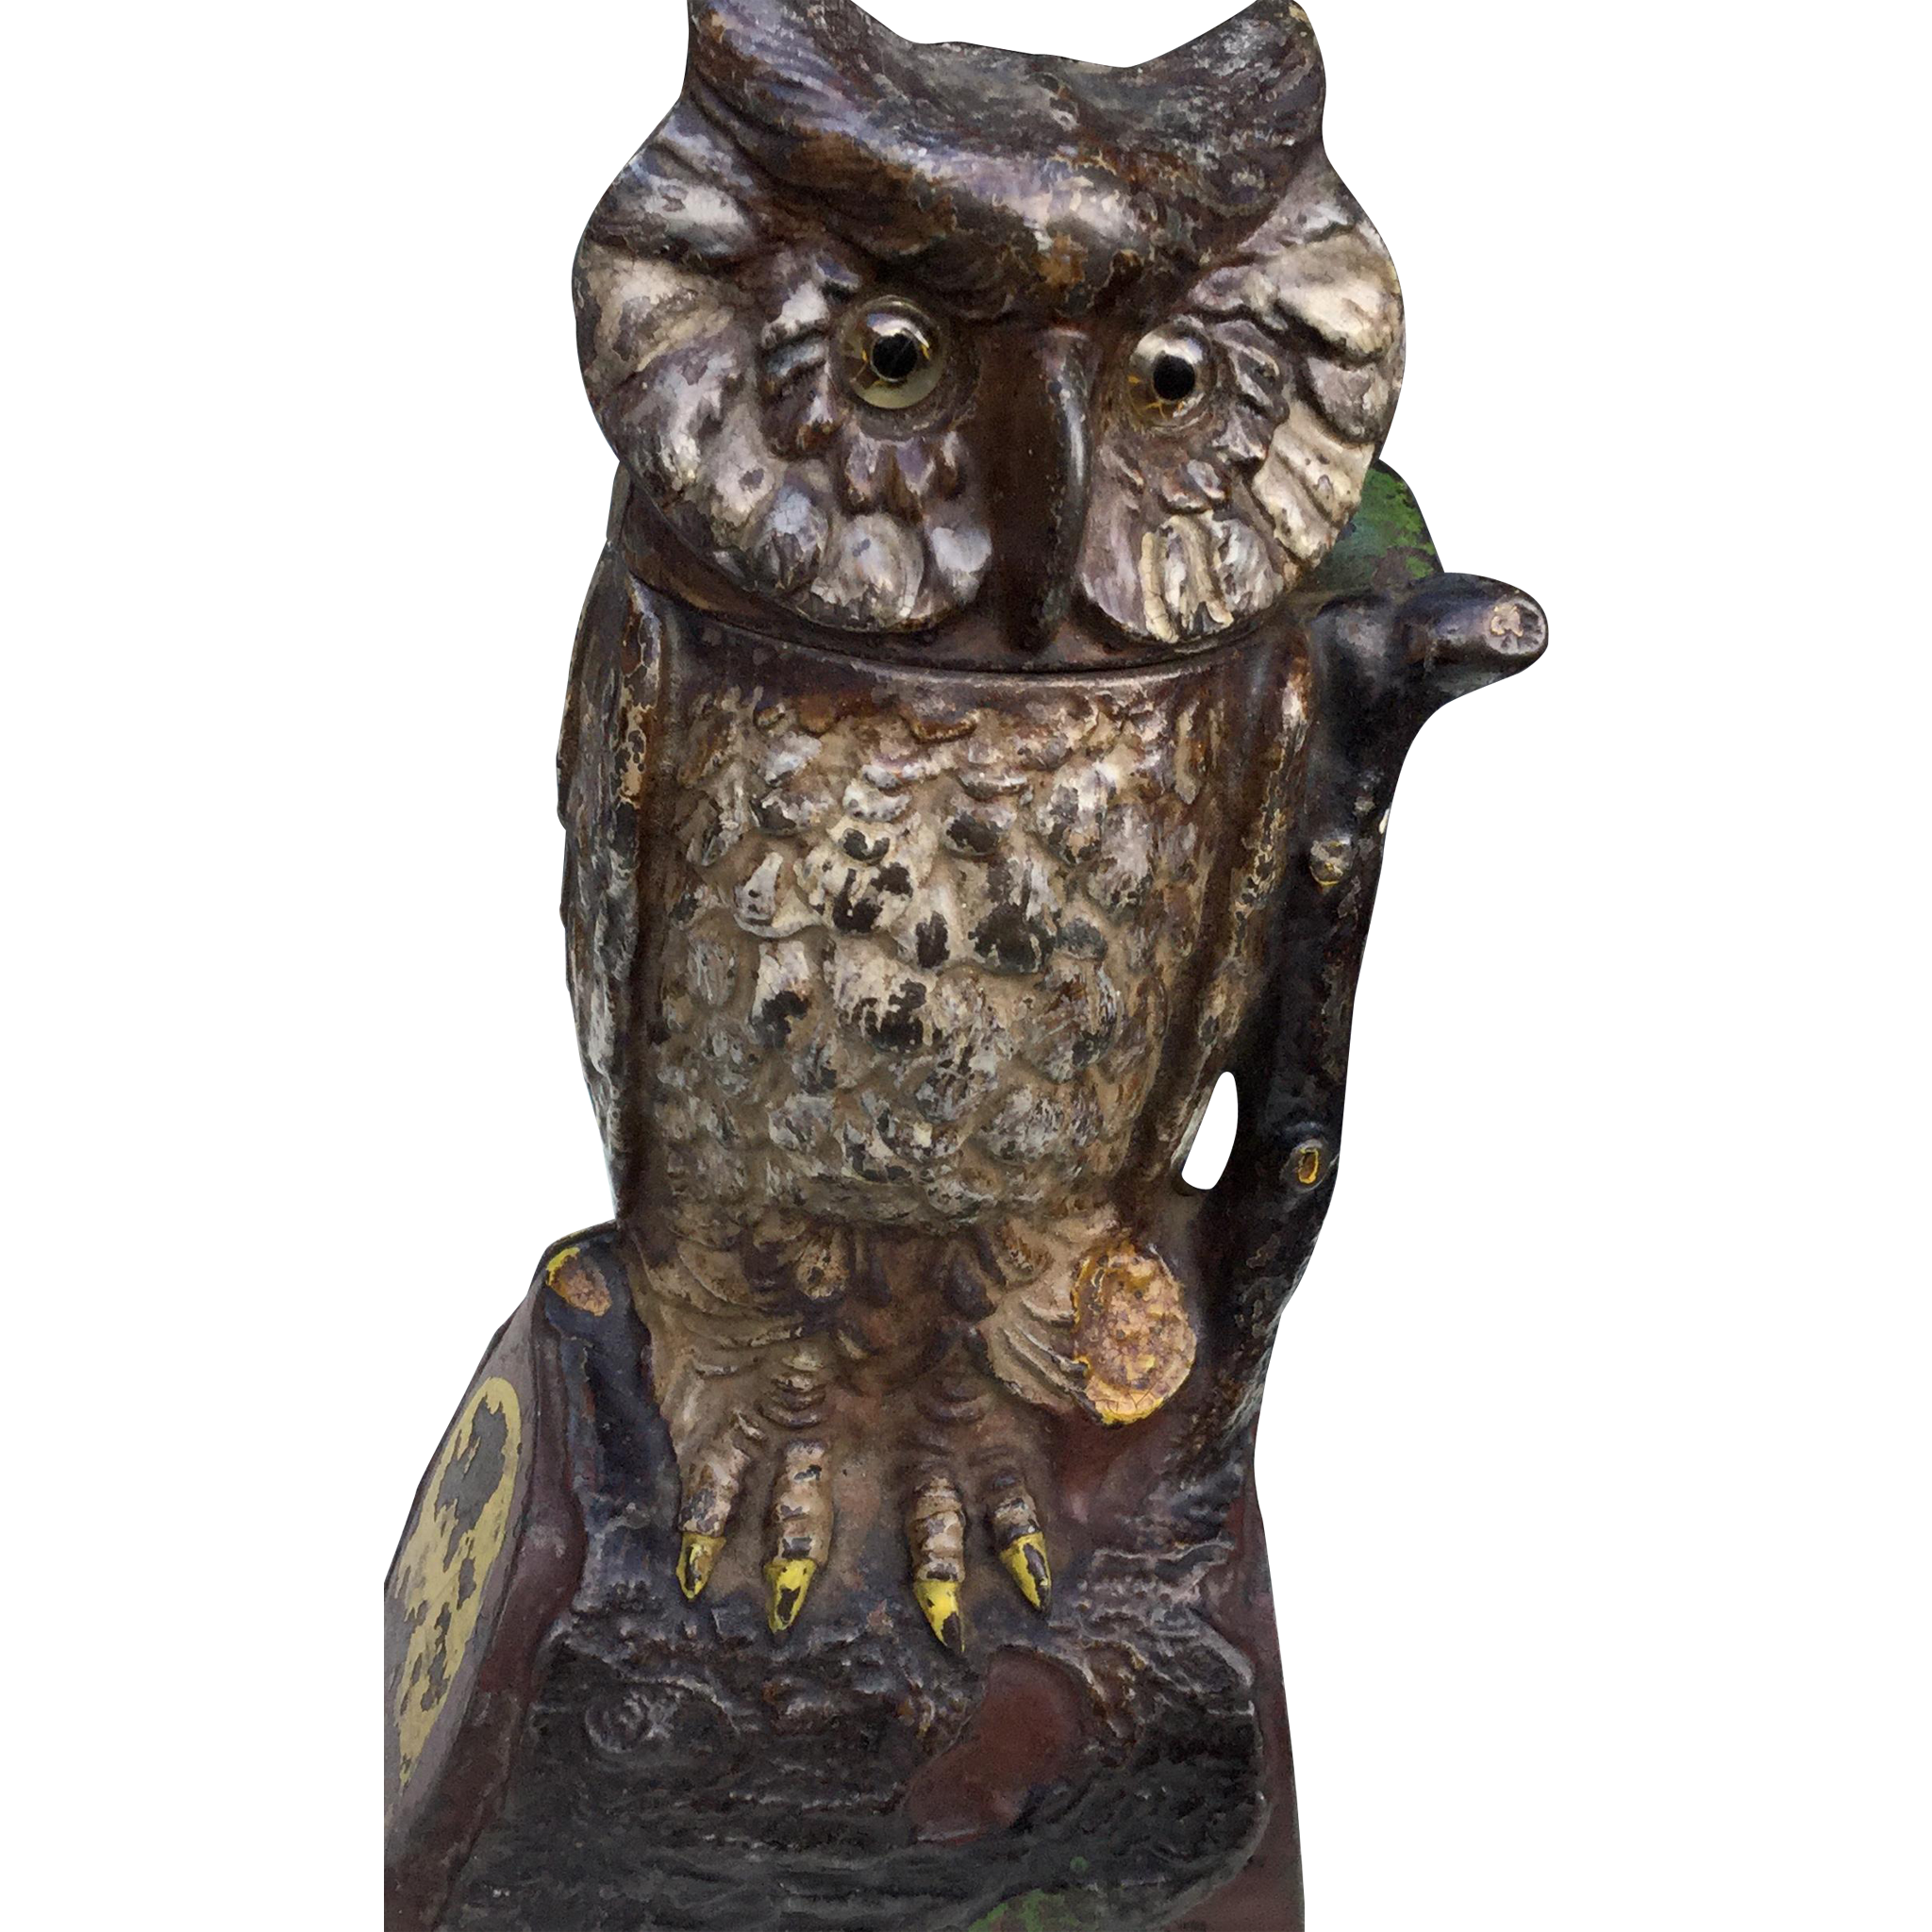 Owl statue png. Moving head glass eyes